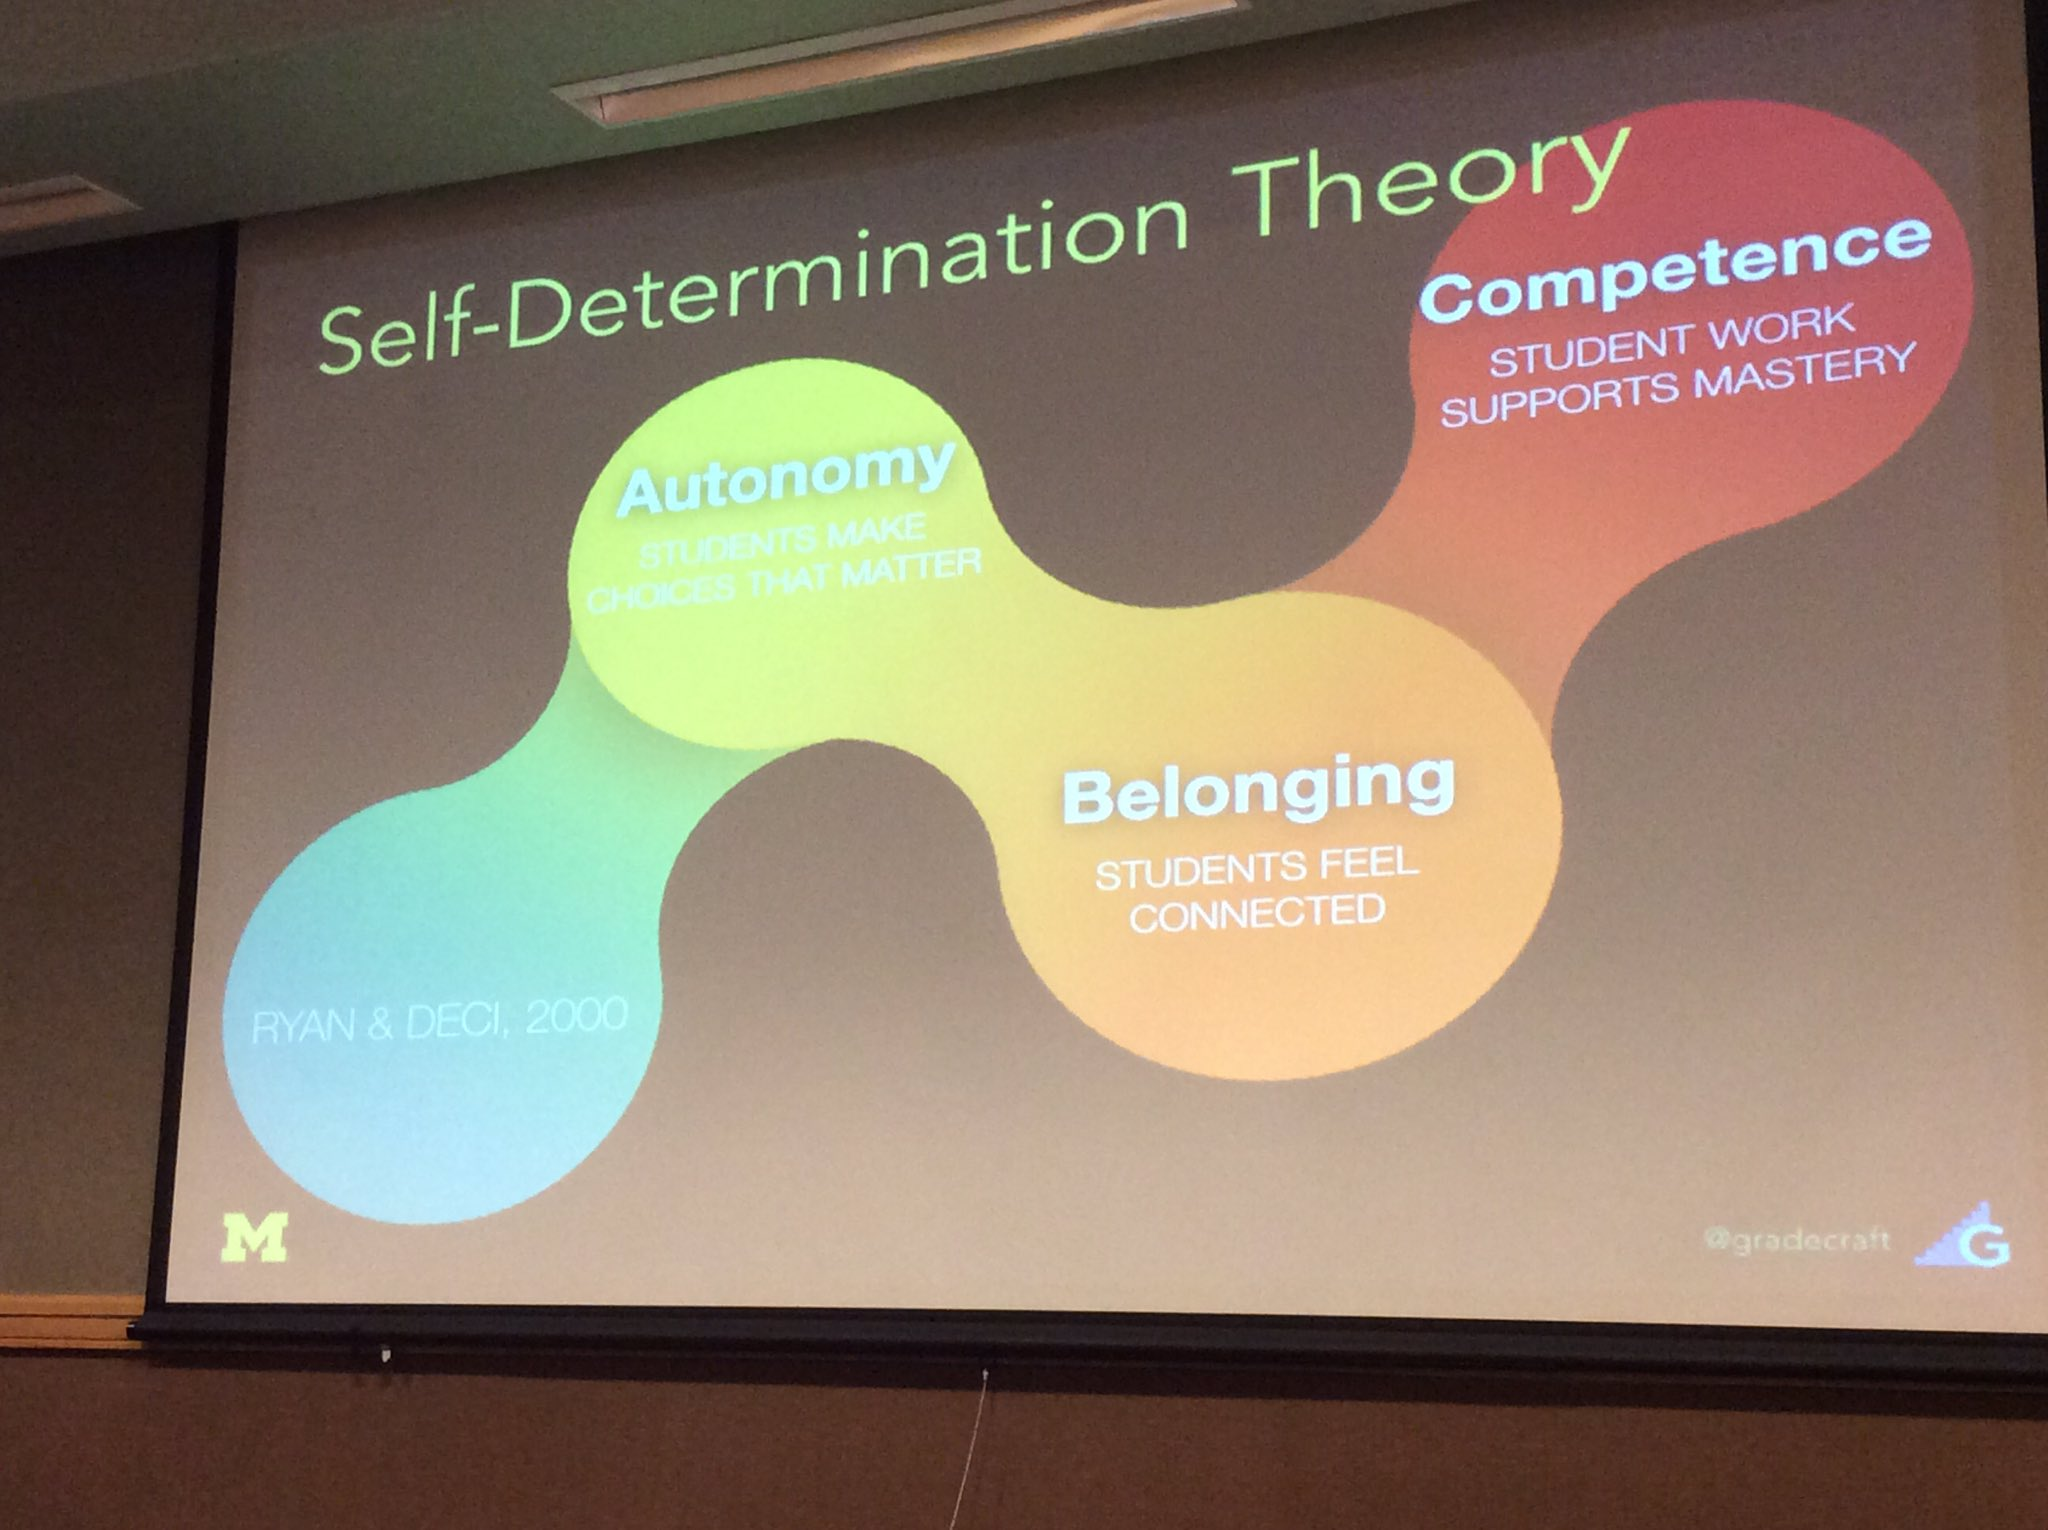 Self-determination theory components #ecorn17 https://t.co/nyaEw6mzZu